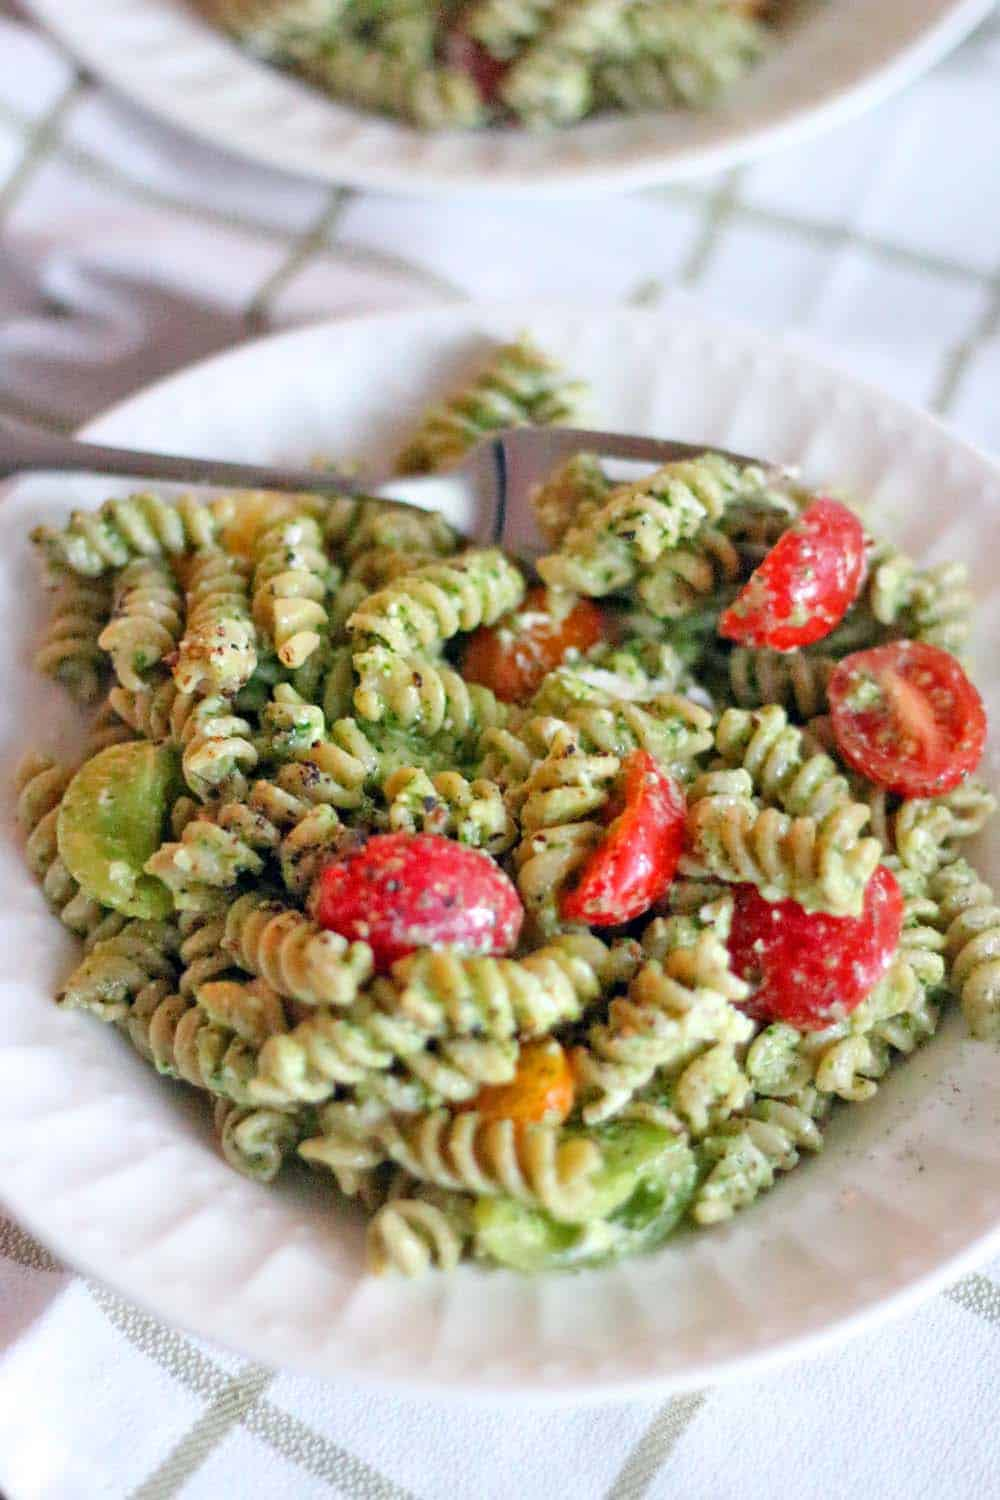 Four Ingredient Pesto Pasta Salad | All you need to make this healthy, light, and delicious pasta salad is 15 minutes and four ingredients! Great for a picnic or a summer party.